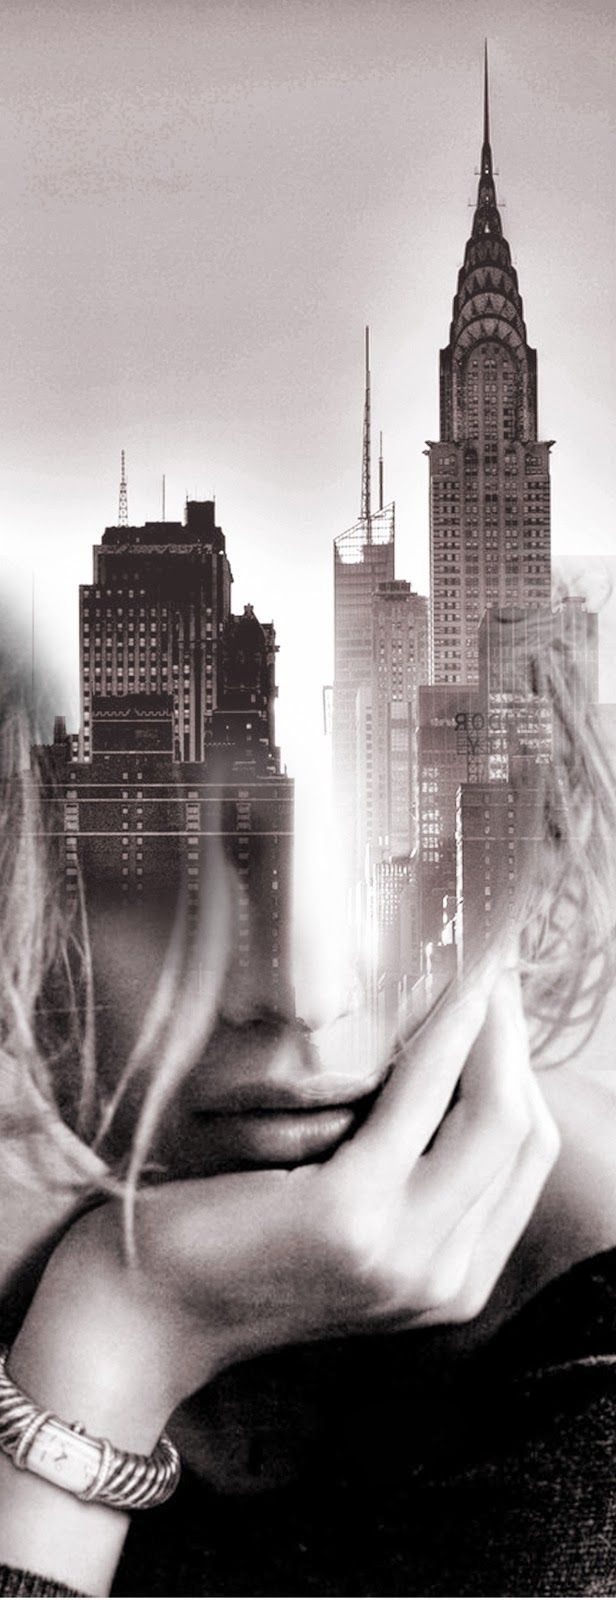 Antonio Mora Antonio Mora is an experienced creative Spanish who after an extensive career like designe...